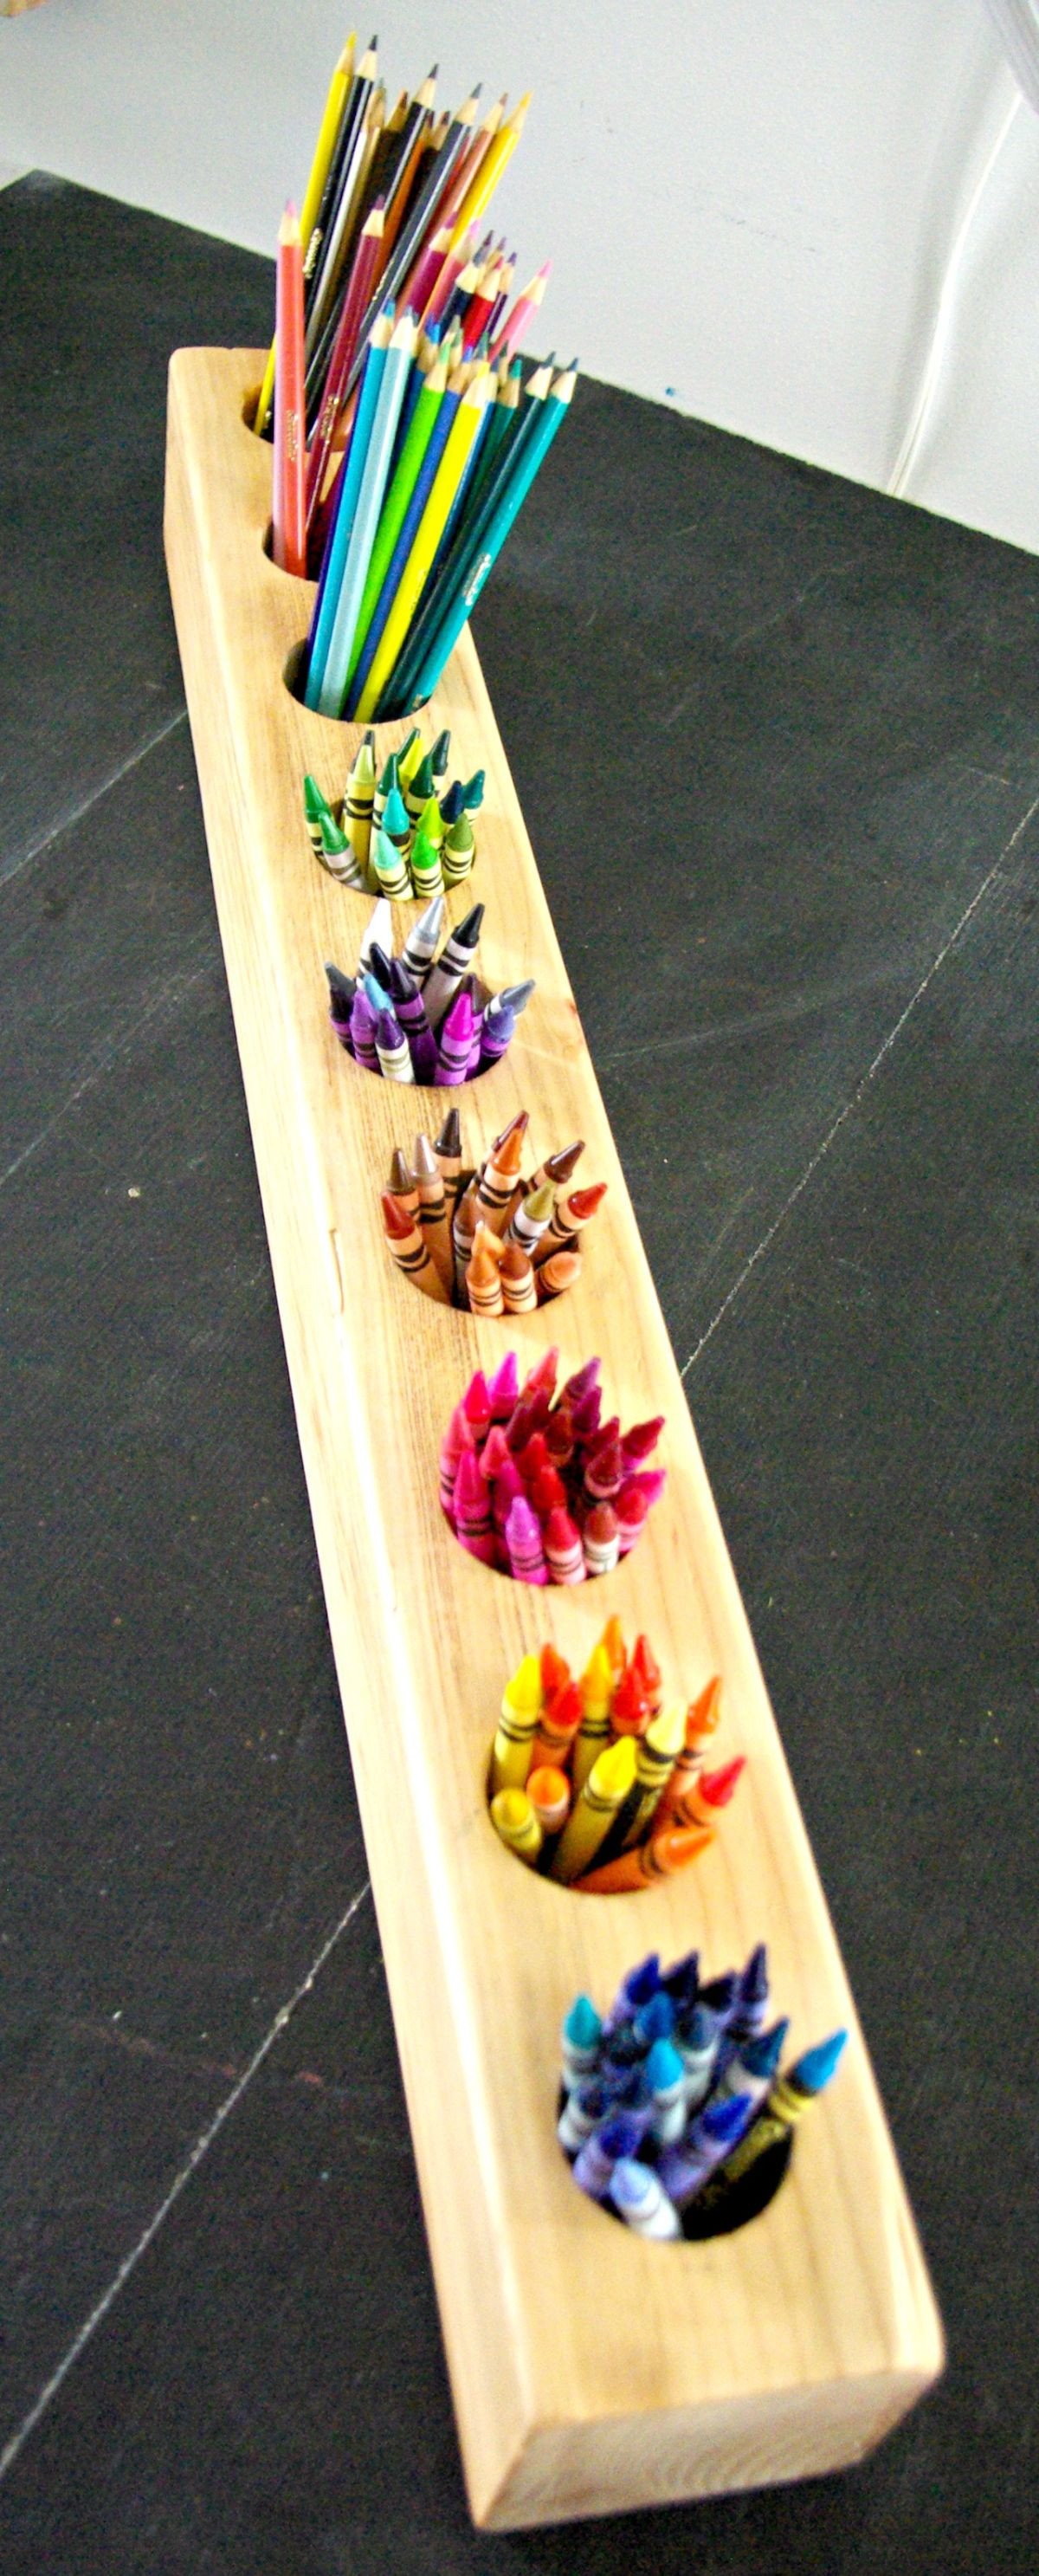 Best ideas about DIY Pencil Organizer . Save or Pin Rustic DIY Pencil Holder Now.